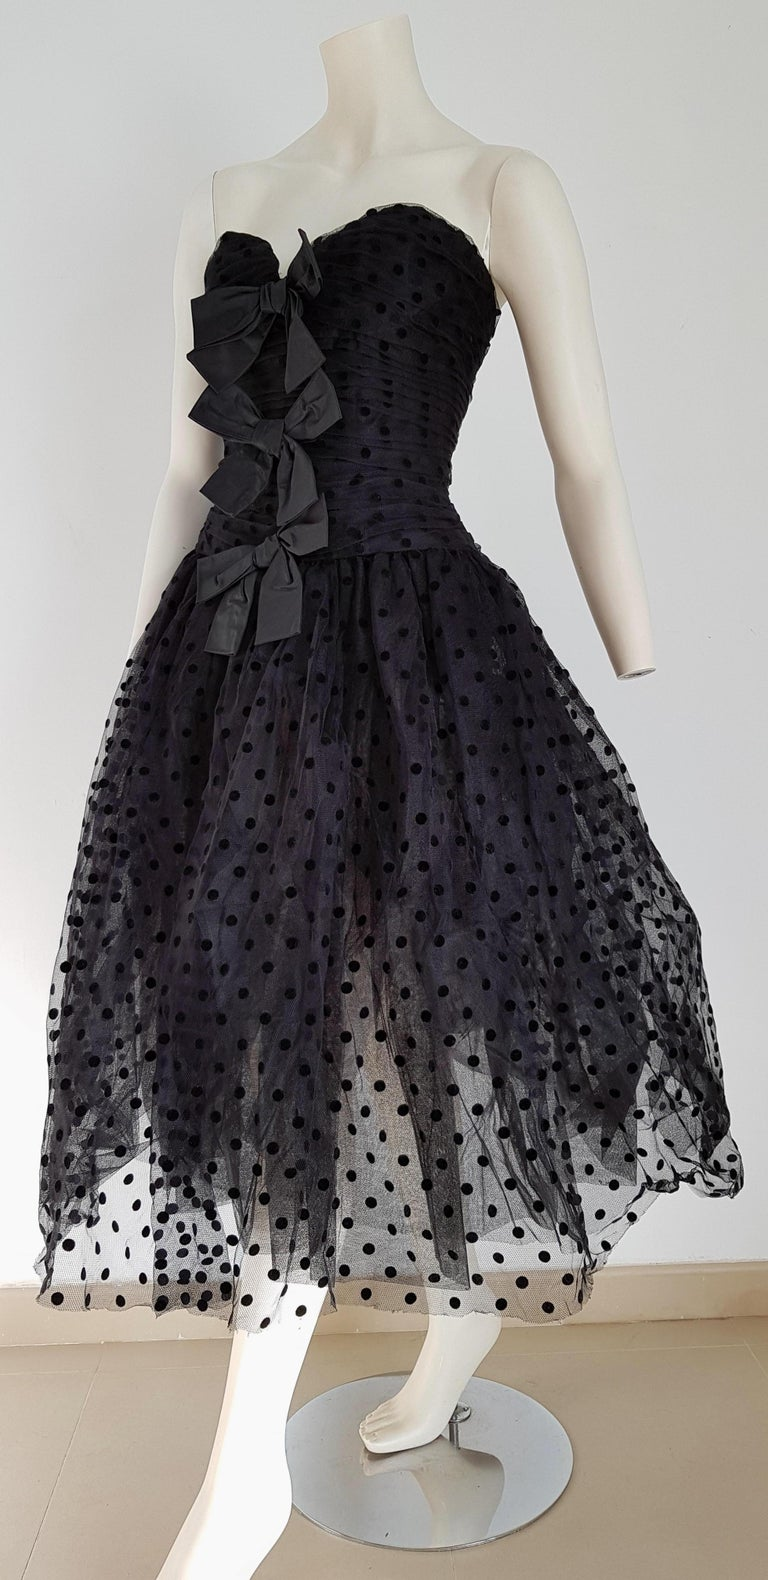 Isabelle ALLARD Paris, black velvet polka dots, plumetis black fabric, three knotted front ribbons, slightly transparent skirt, strapless dress - Unworn, New.  Isabelle ALLARD is a fashion designer that created only haute couture and selling to